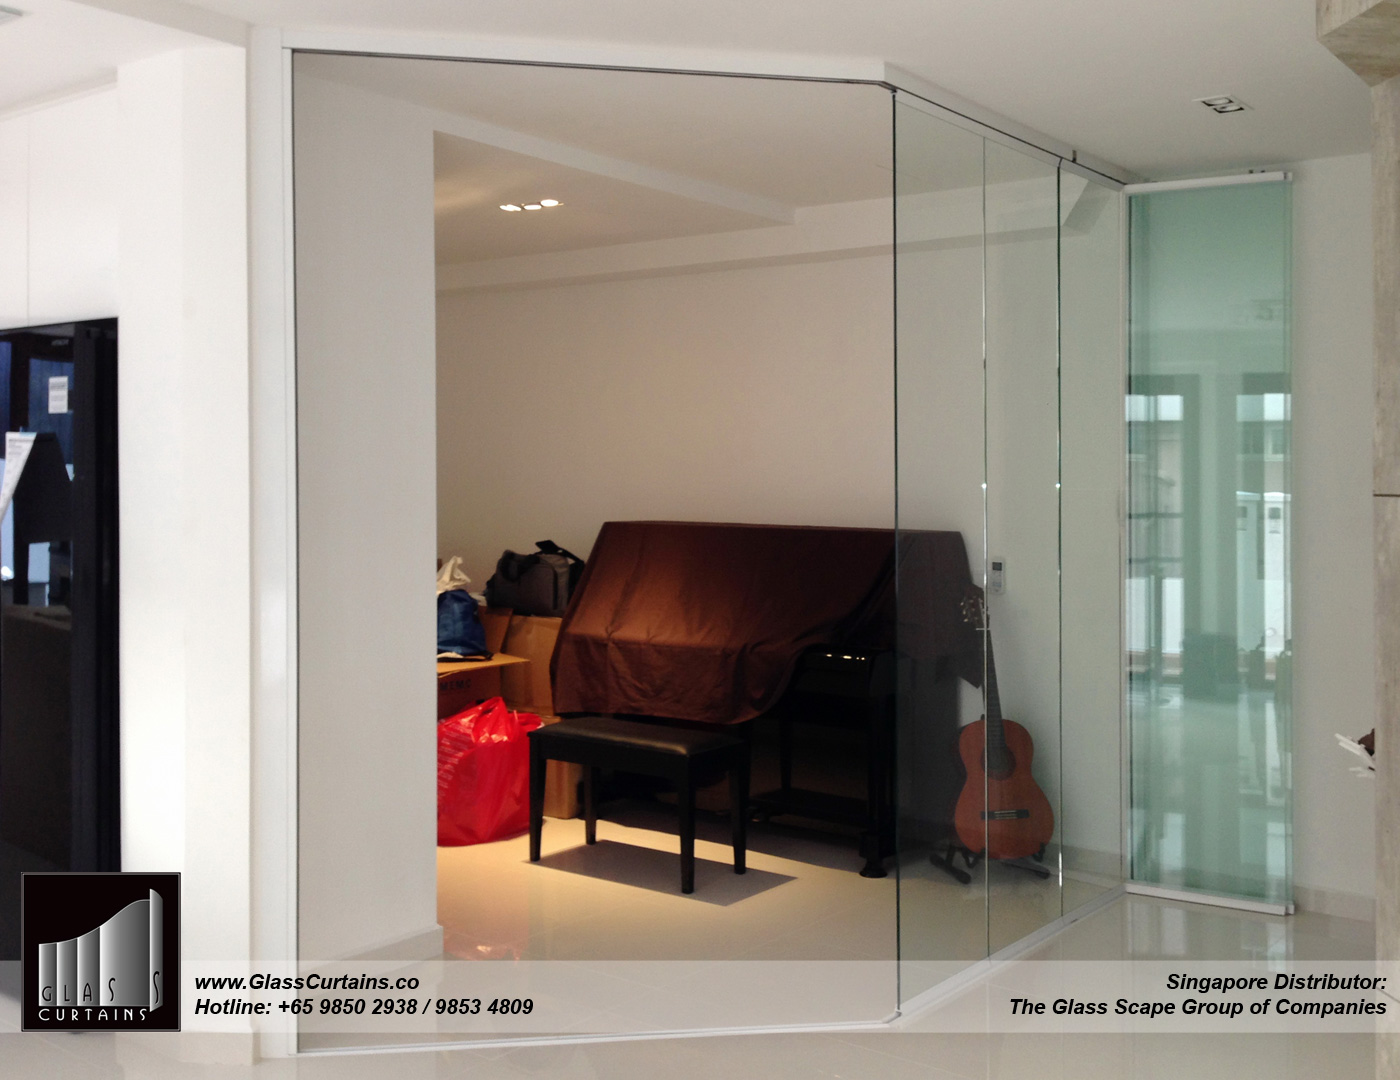 Glass Curtains® partially open